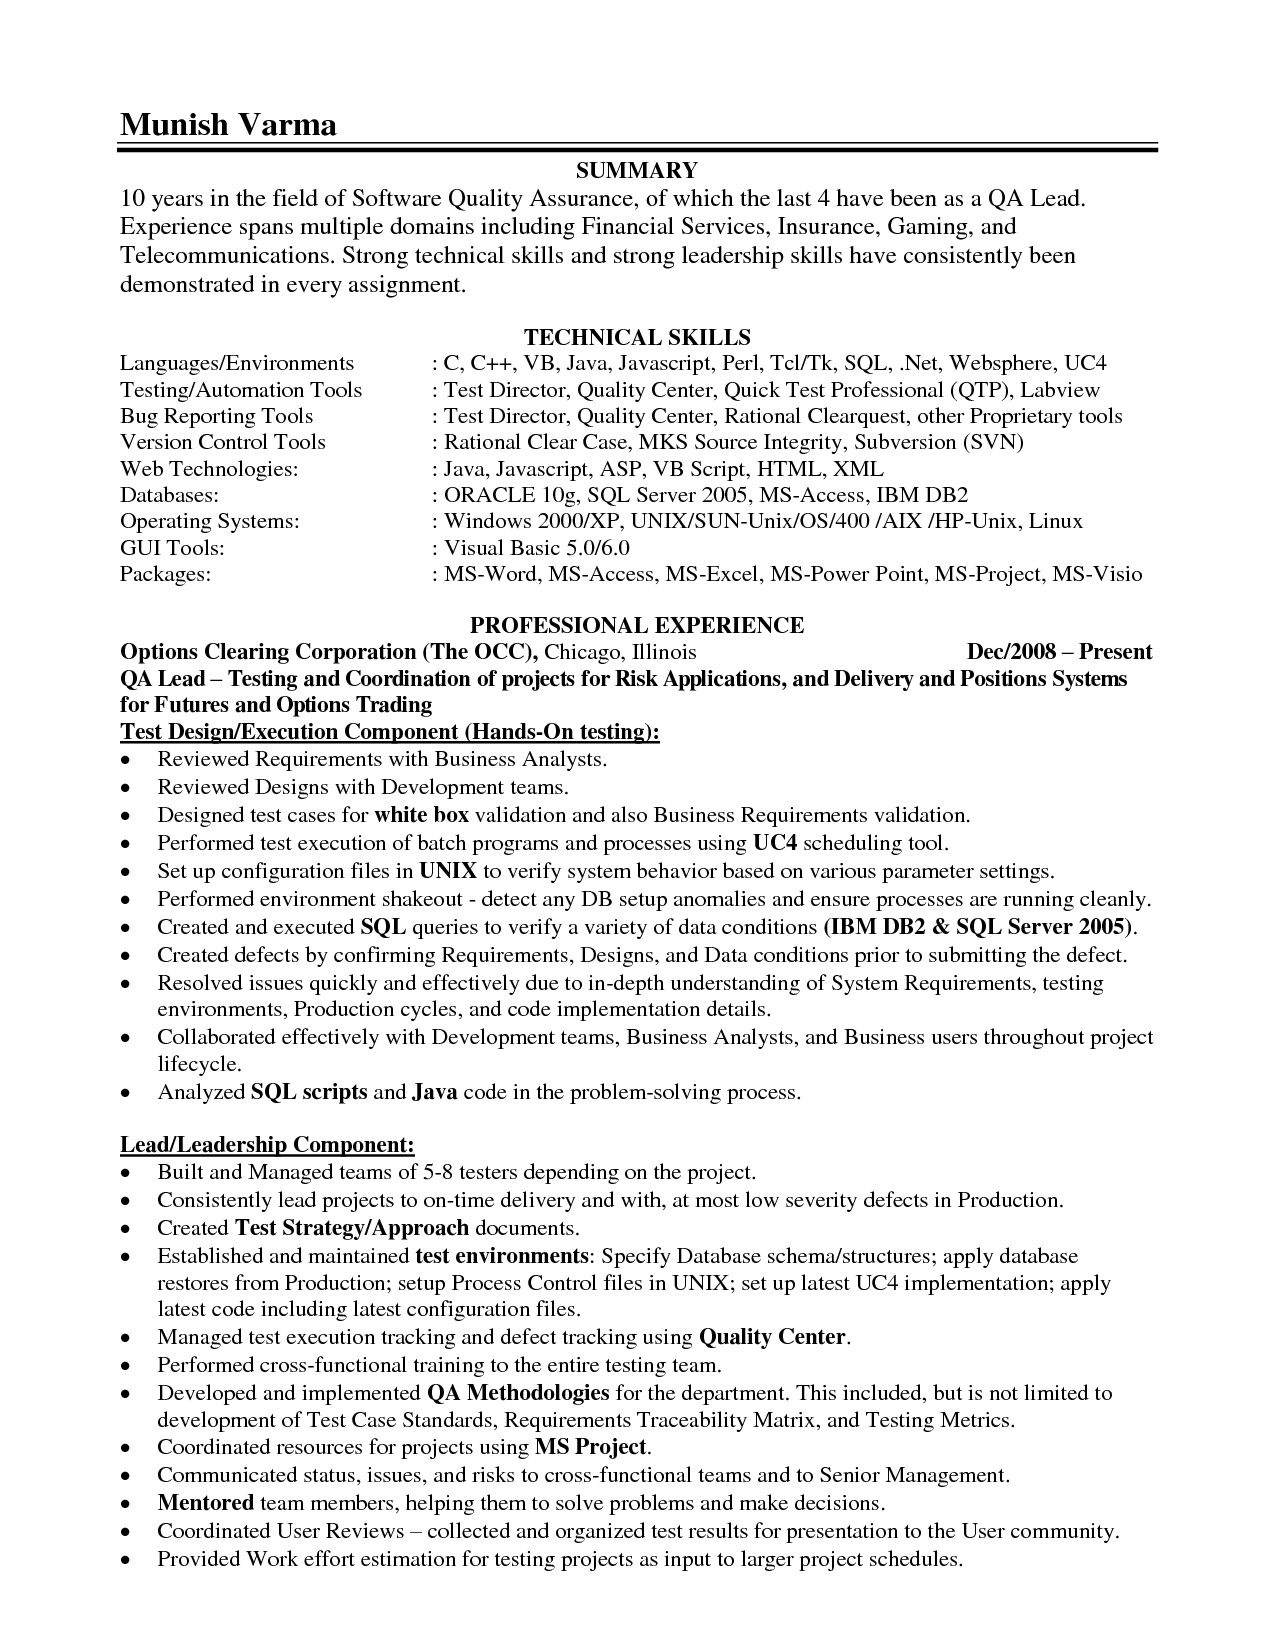 Resume Leadership Skills Examples 7 How To Describe Leadership Skills On Resume  Resume How To List .  Skill Example For Resume